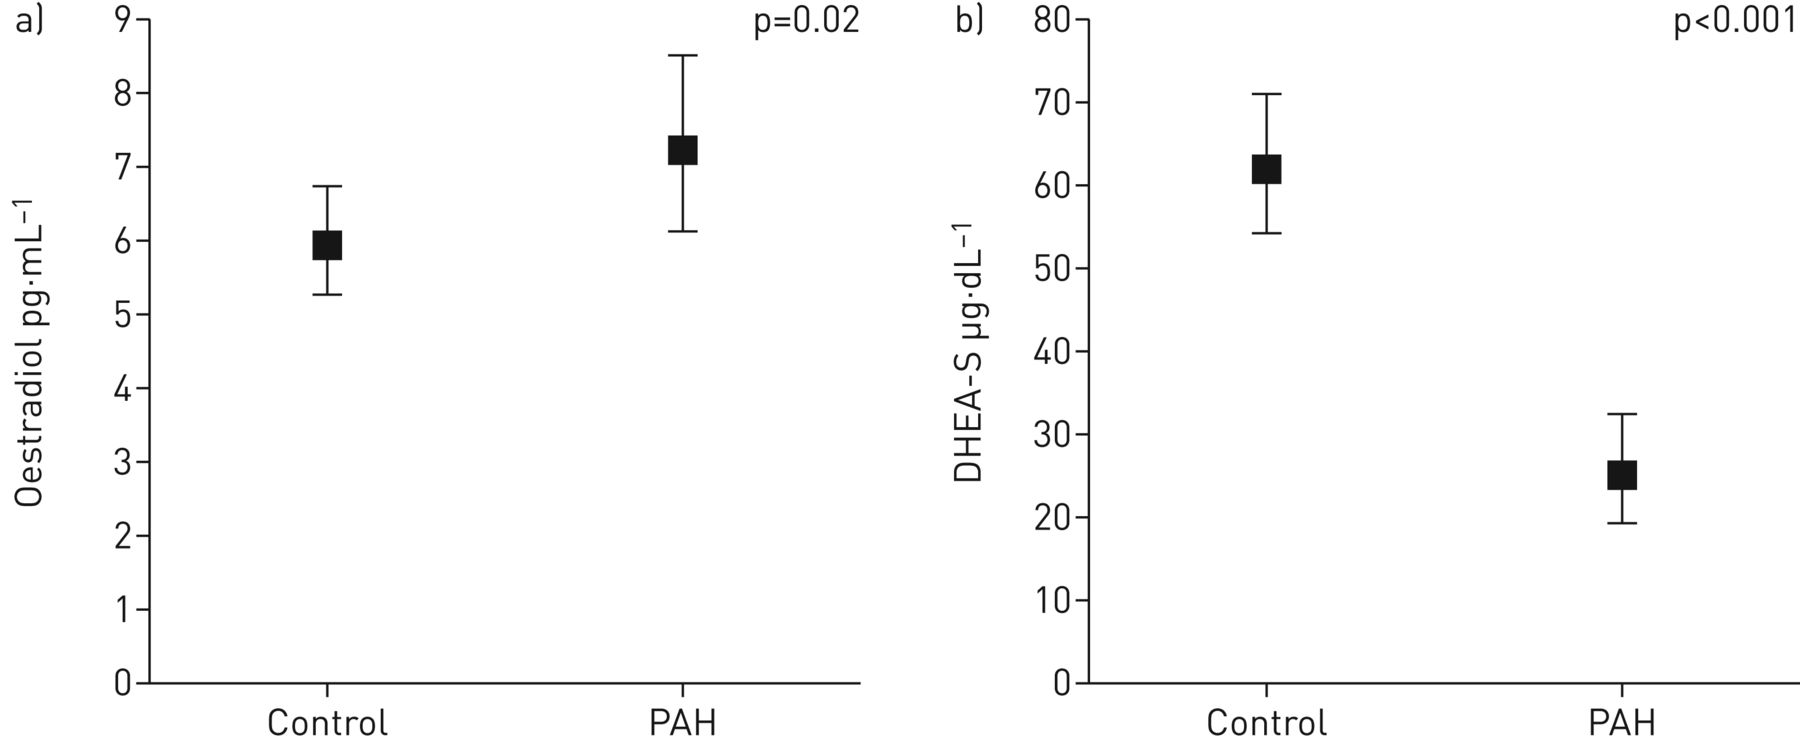 Lower DHEA-S levels predict disease and worse outcomes in post